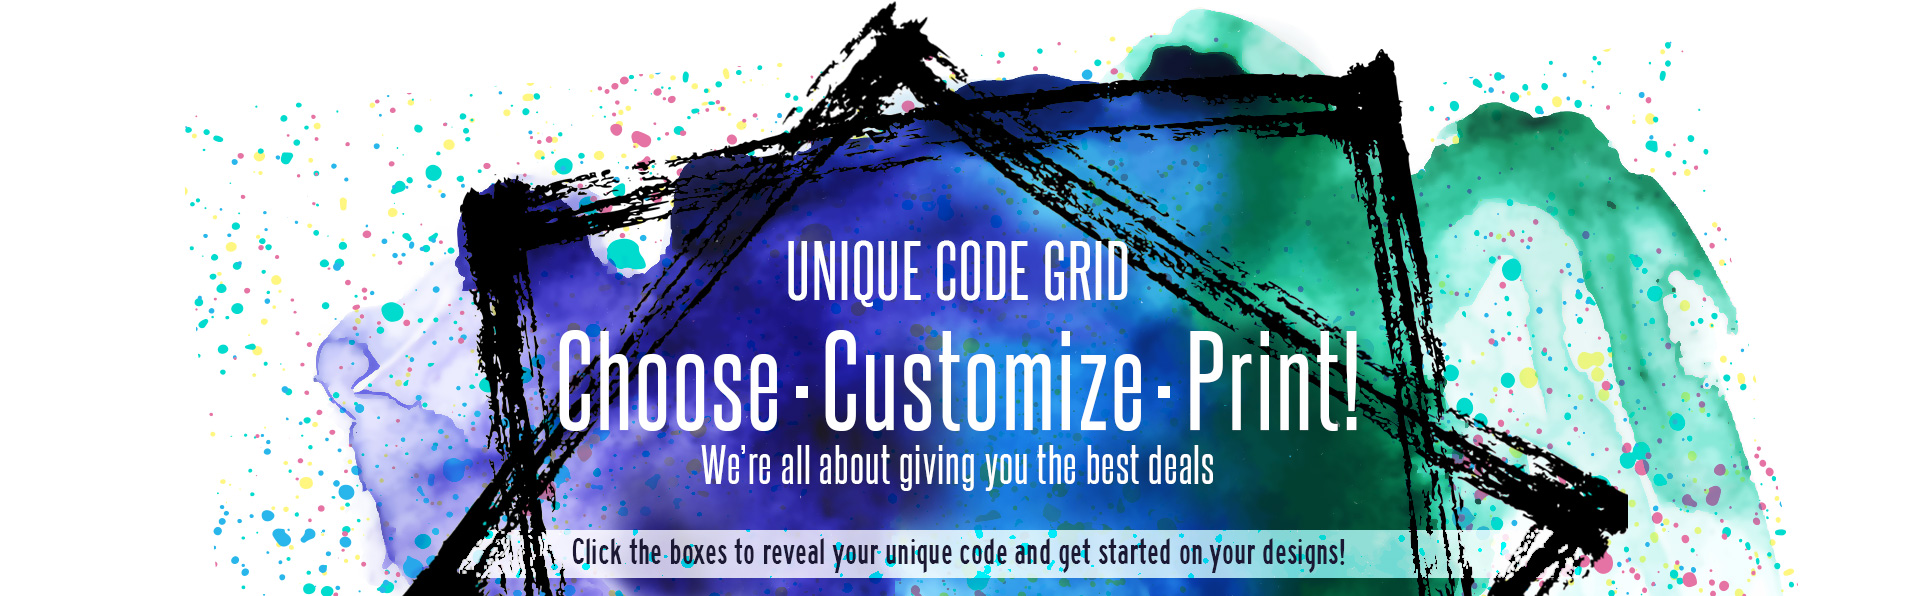 Unique Code Grid - Choose. Customize. Print!